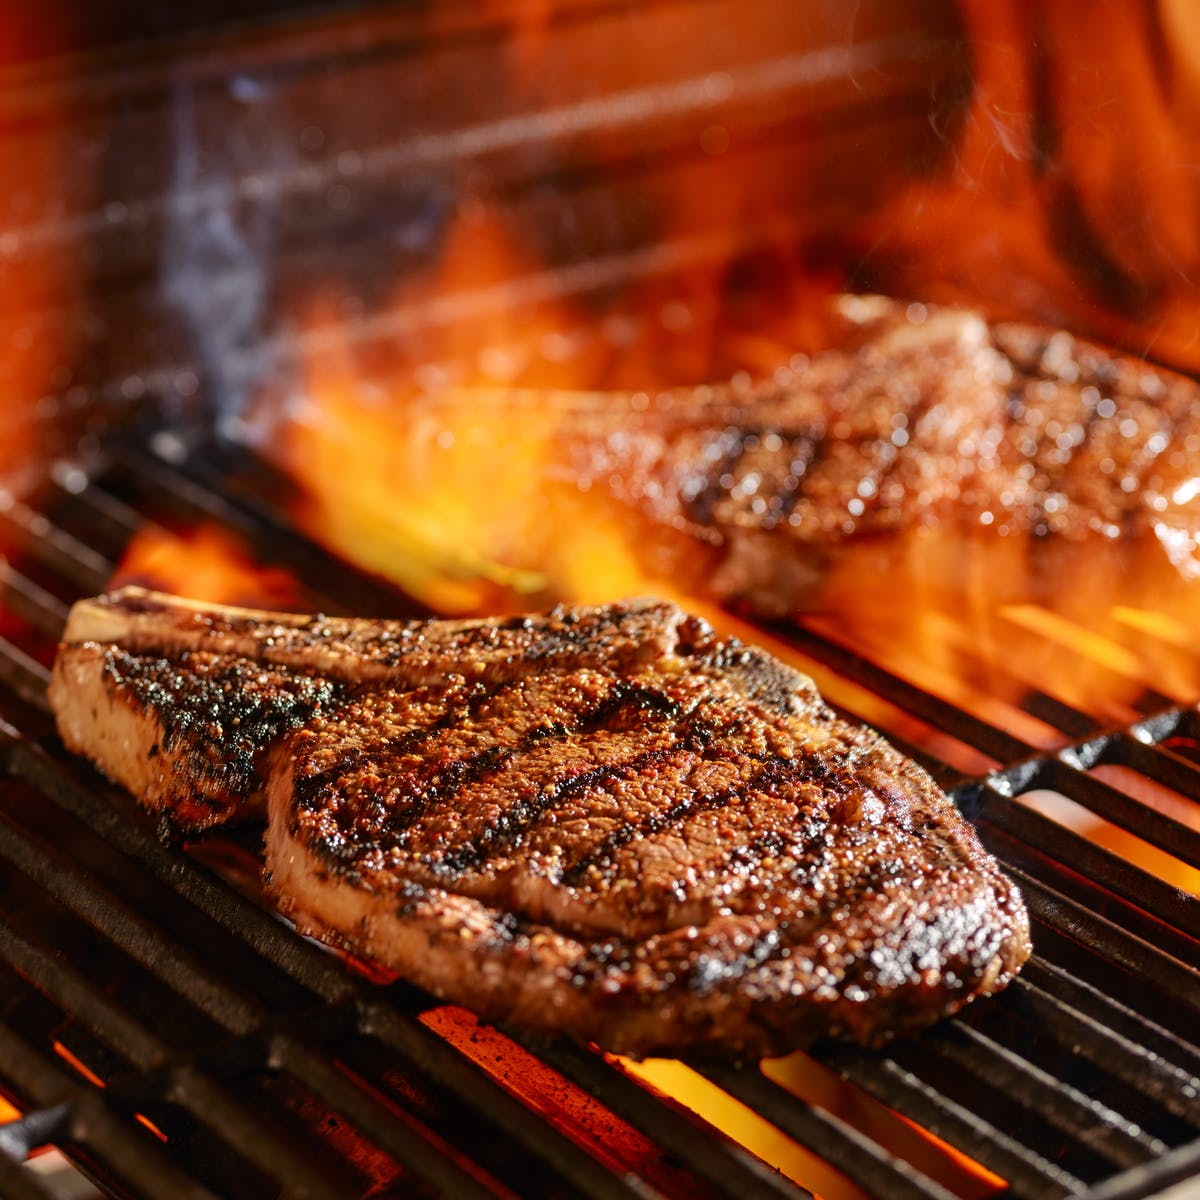 a close up of food on a grill